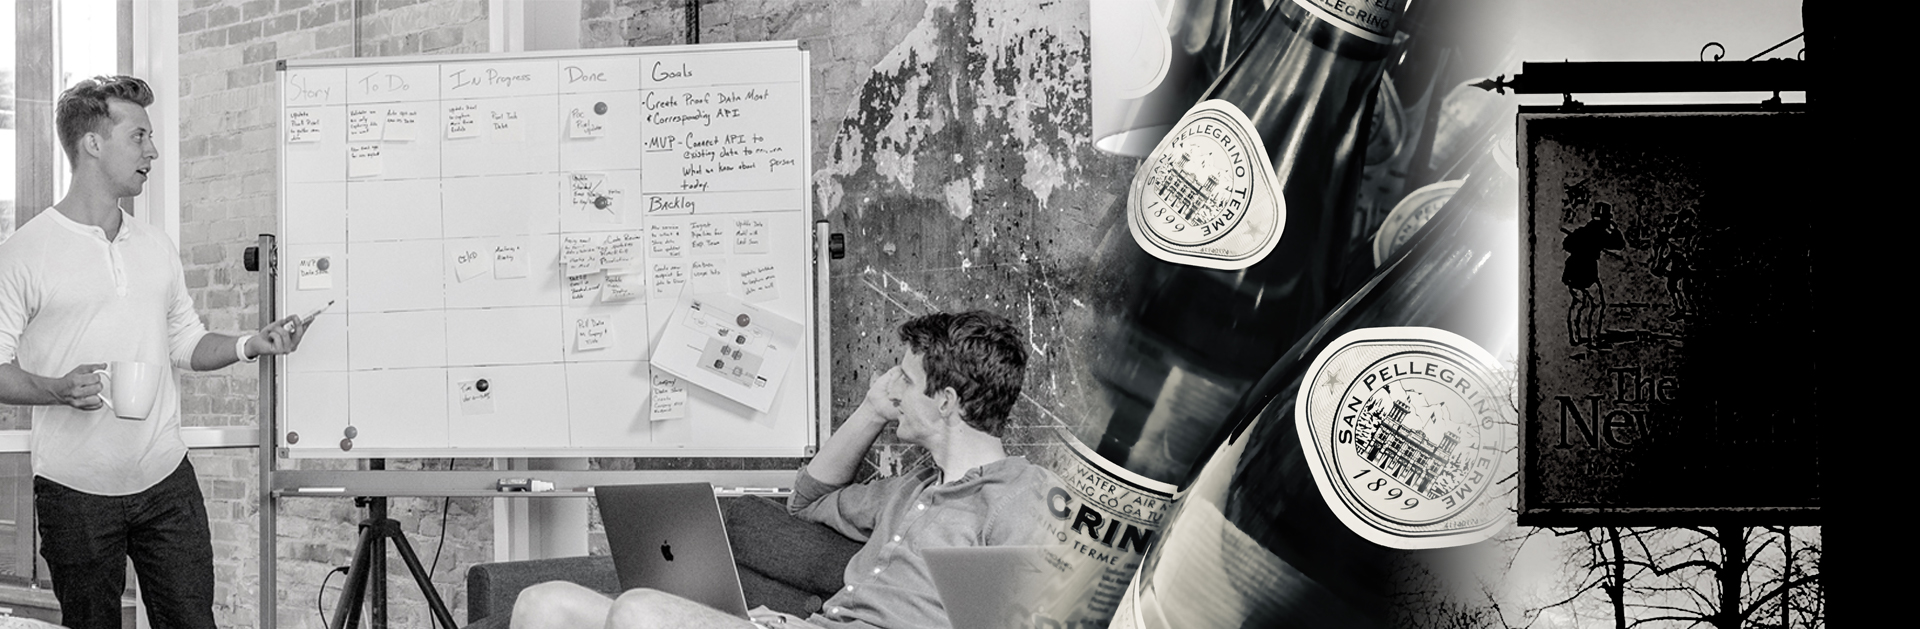 Photo montage image of mineral water, men talking next to white board and pub sign